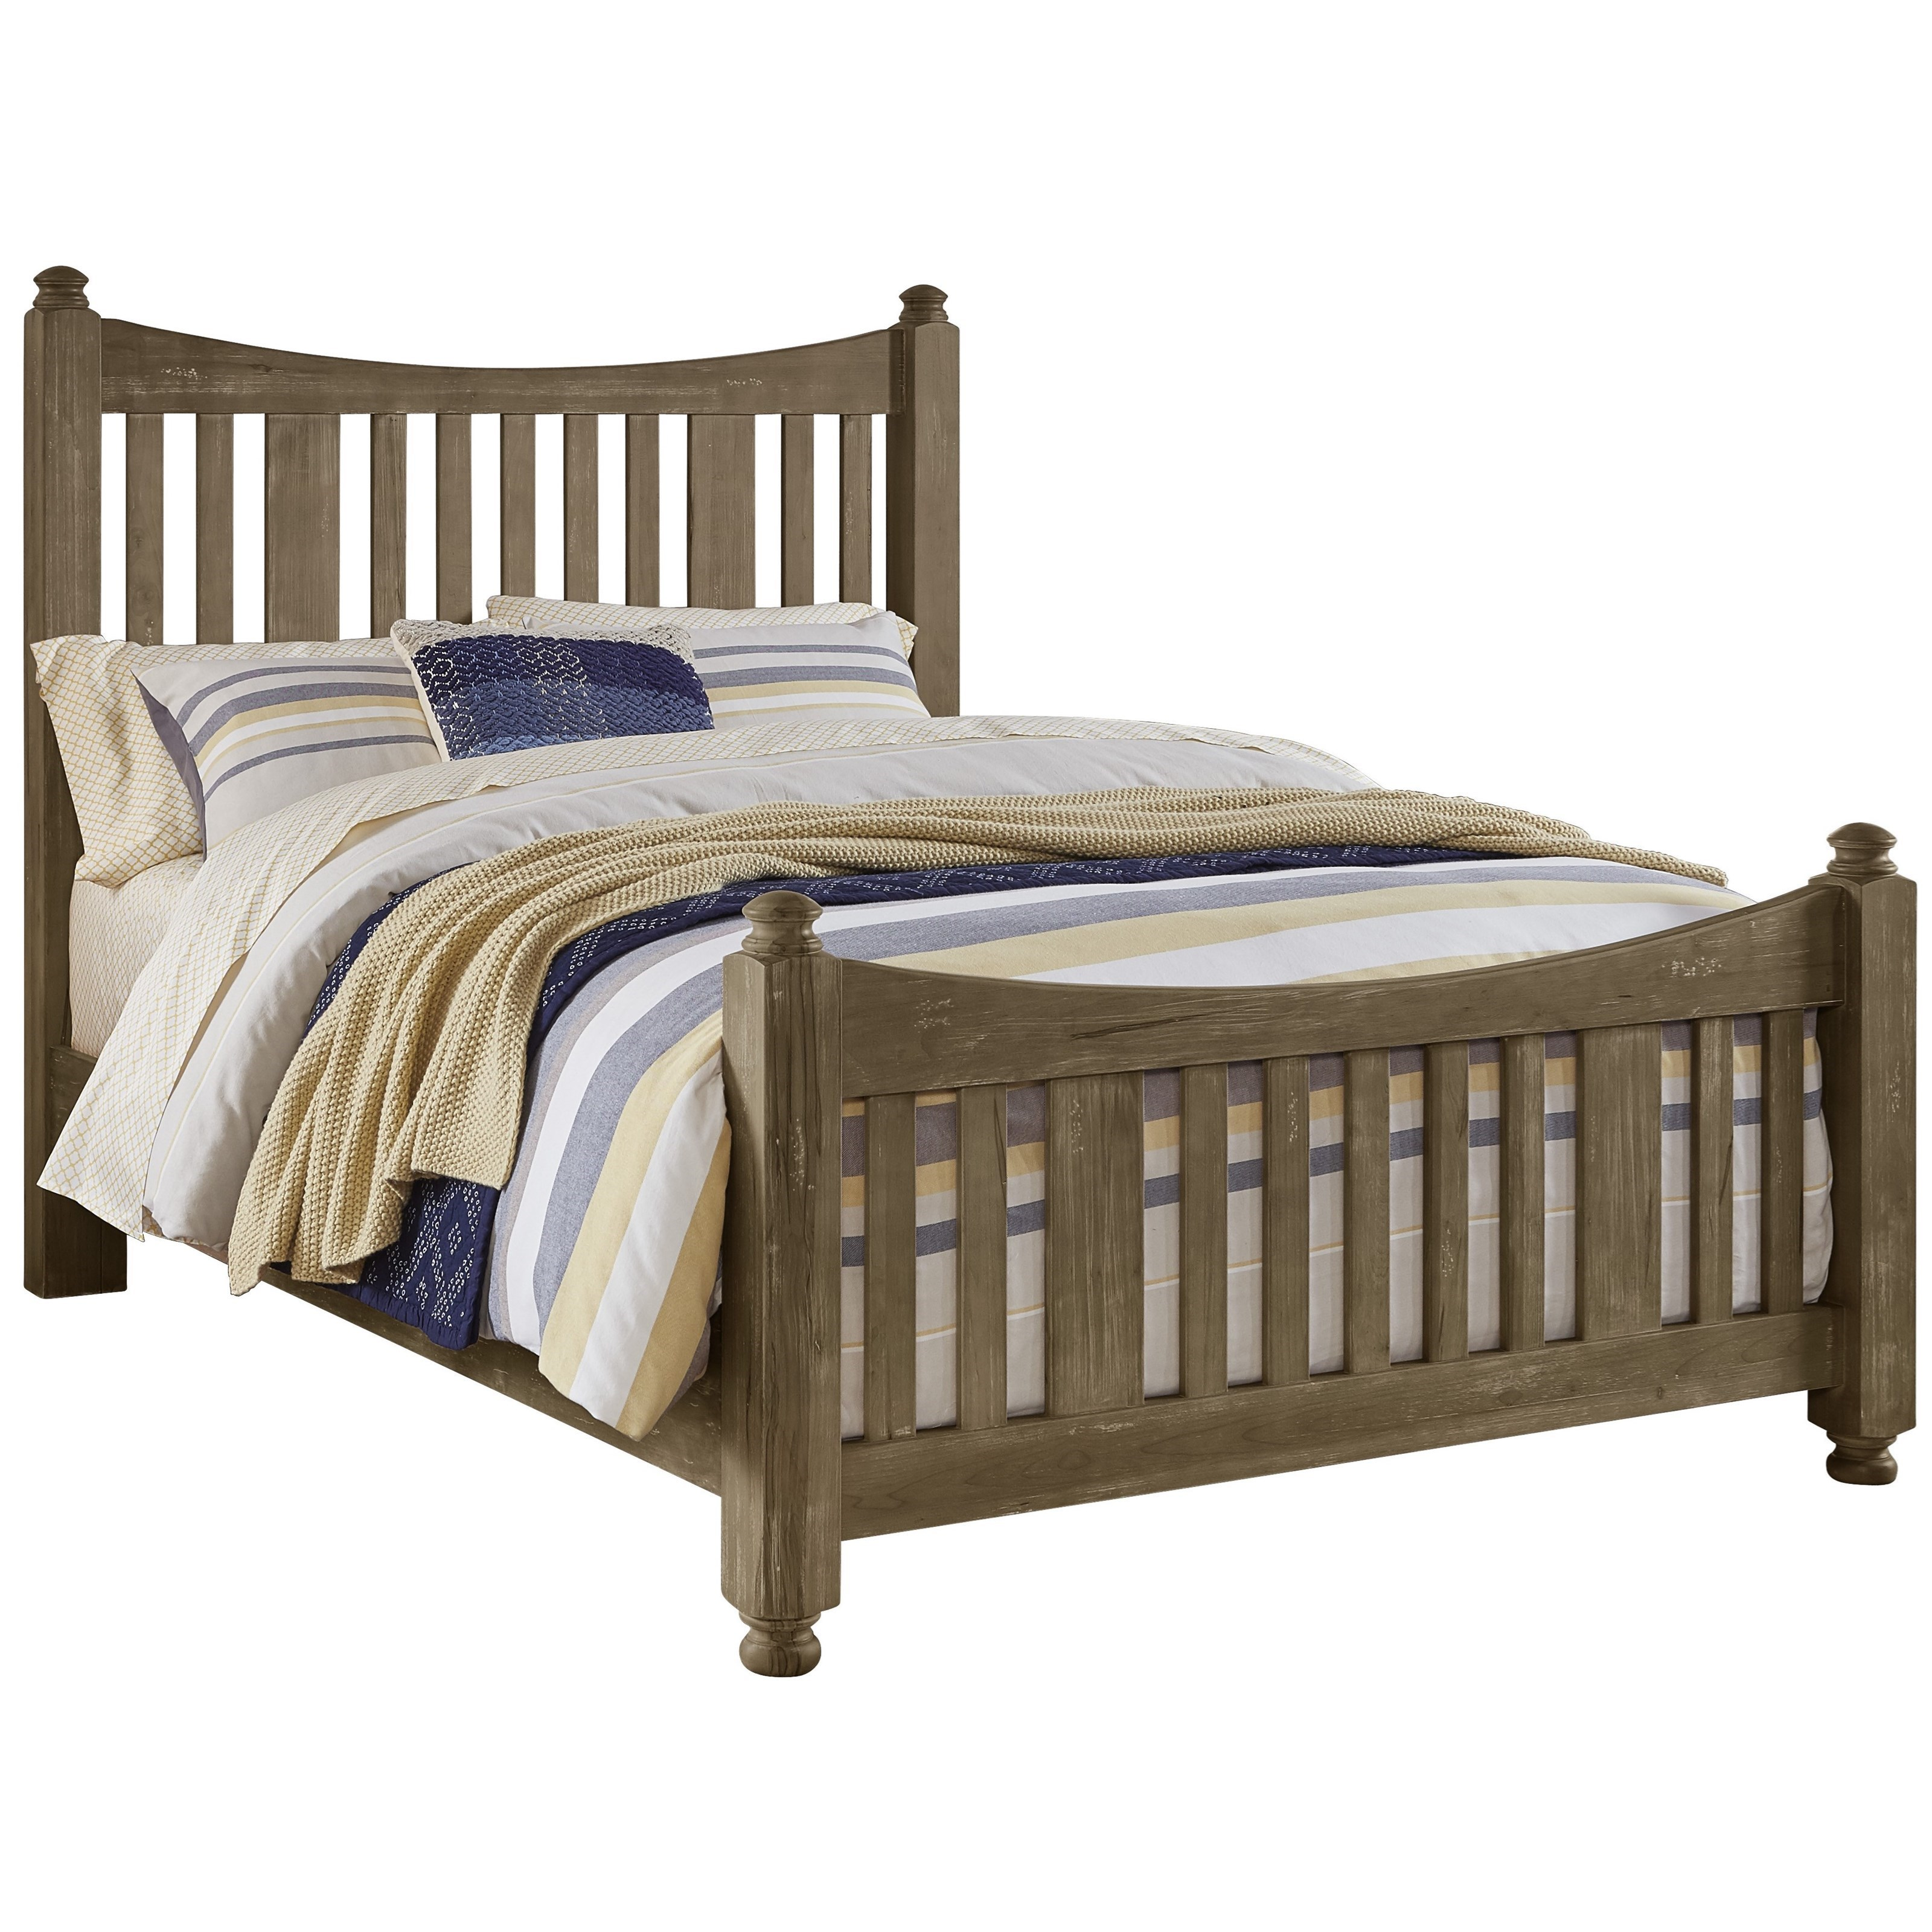 Maple Road Queen Slat Poster Bed by Artisan & Post at Godby Home Furnishings